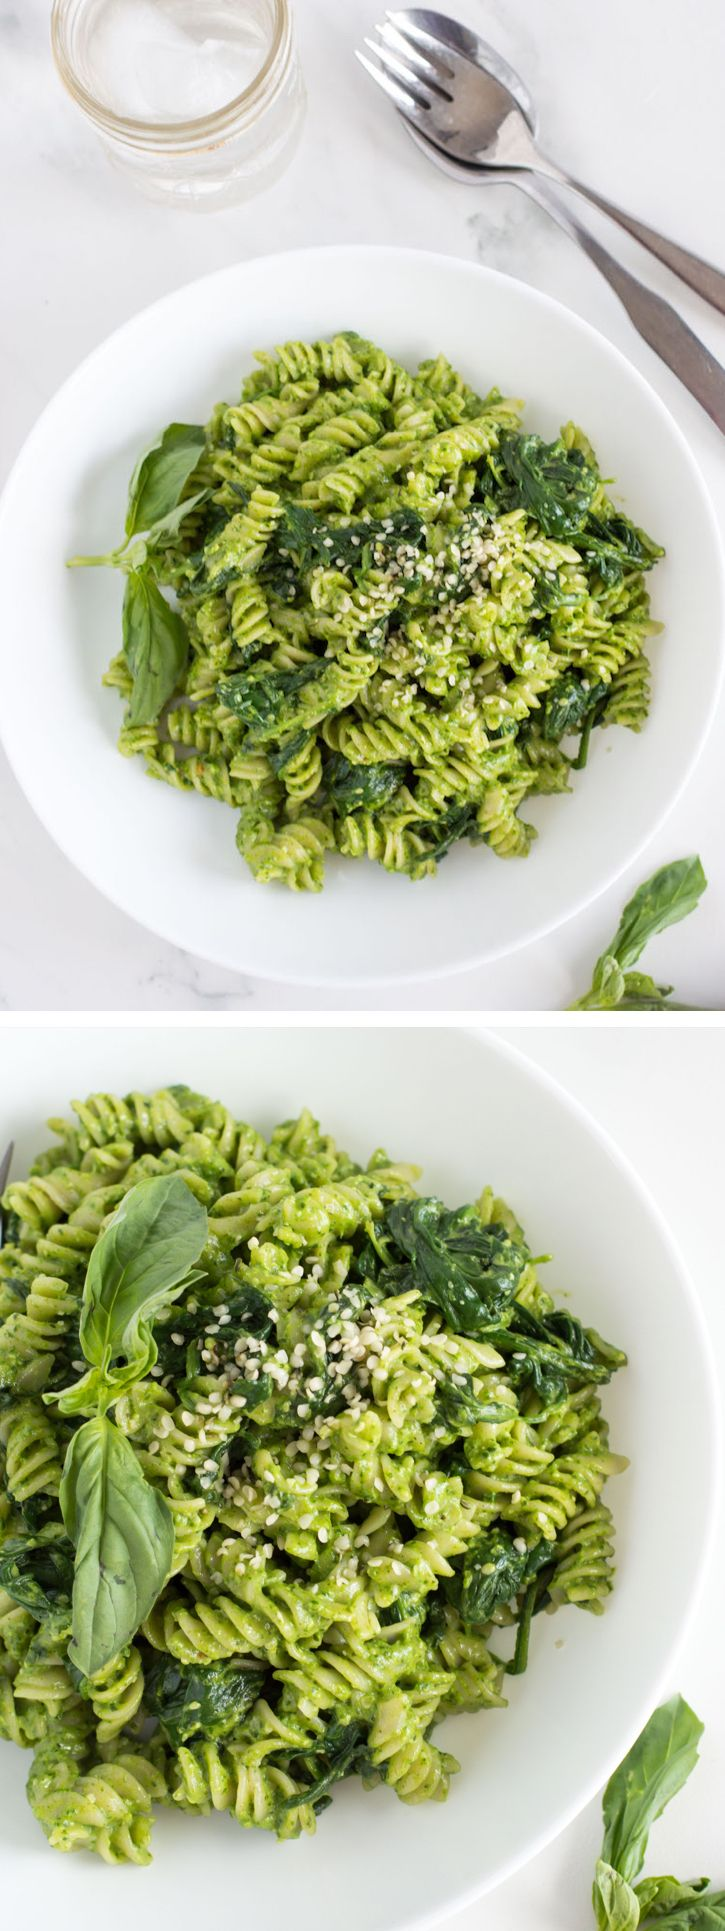 Spinach Pesto Pasta with Basil and Goat Cheese   nourishedtheblog.com   A super simple yet delicious Spinach Pesto Pasta with Basil and Goat Cheese recipe made gluten free and vegetarian friendly with spinach, basil, lemon, garlic and goat cheese. Click for the recipe!